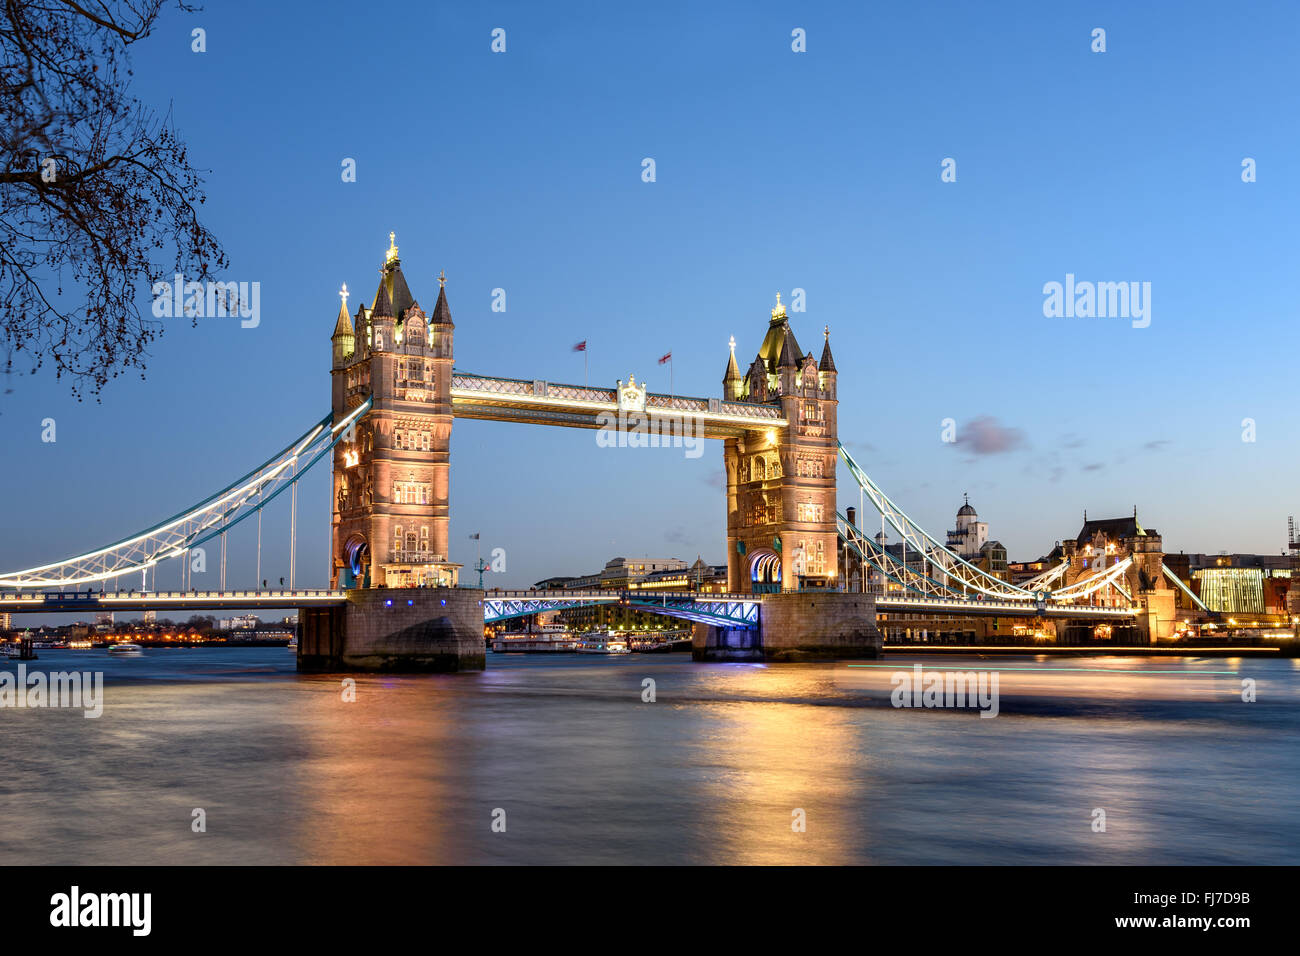 Le Tower Bridge de Londres est le plus célèbre monument et attraction touristique. Photo Stock